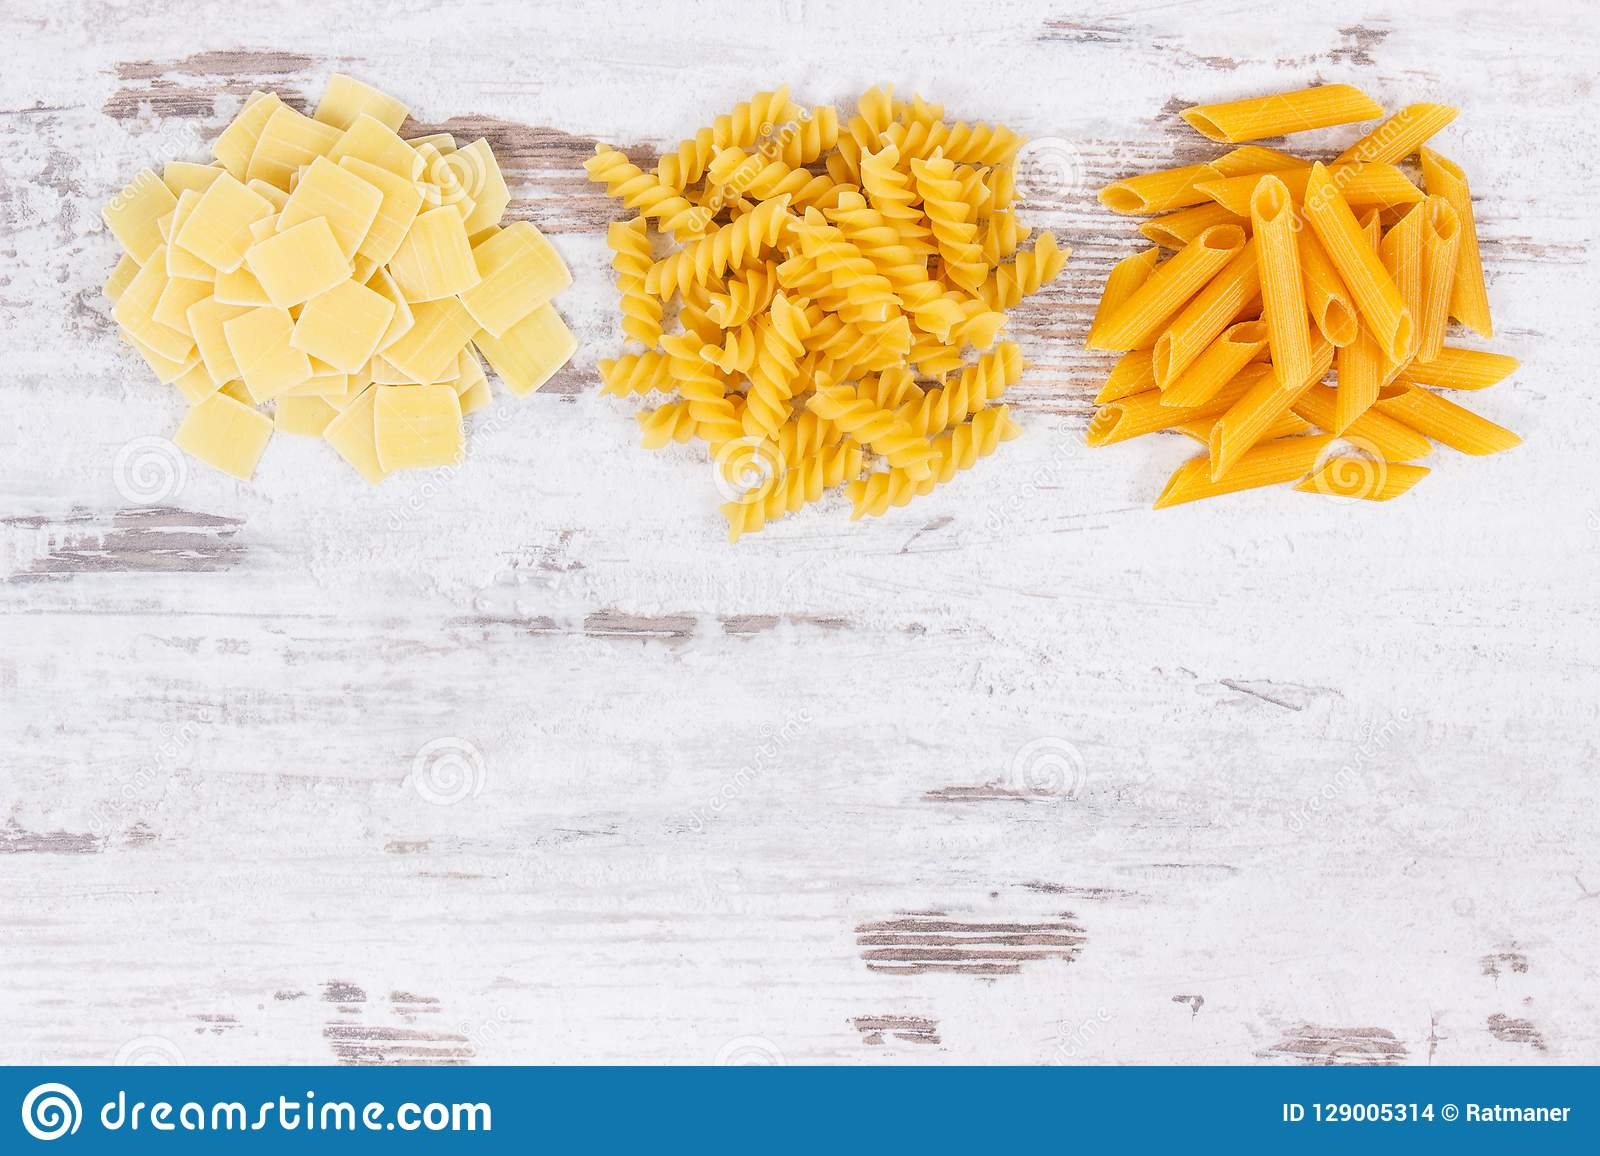 Various pasta as ingredients containing carbohydrates and dietary fiber, healthy nutrition, copy space for text